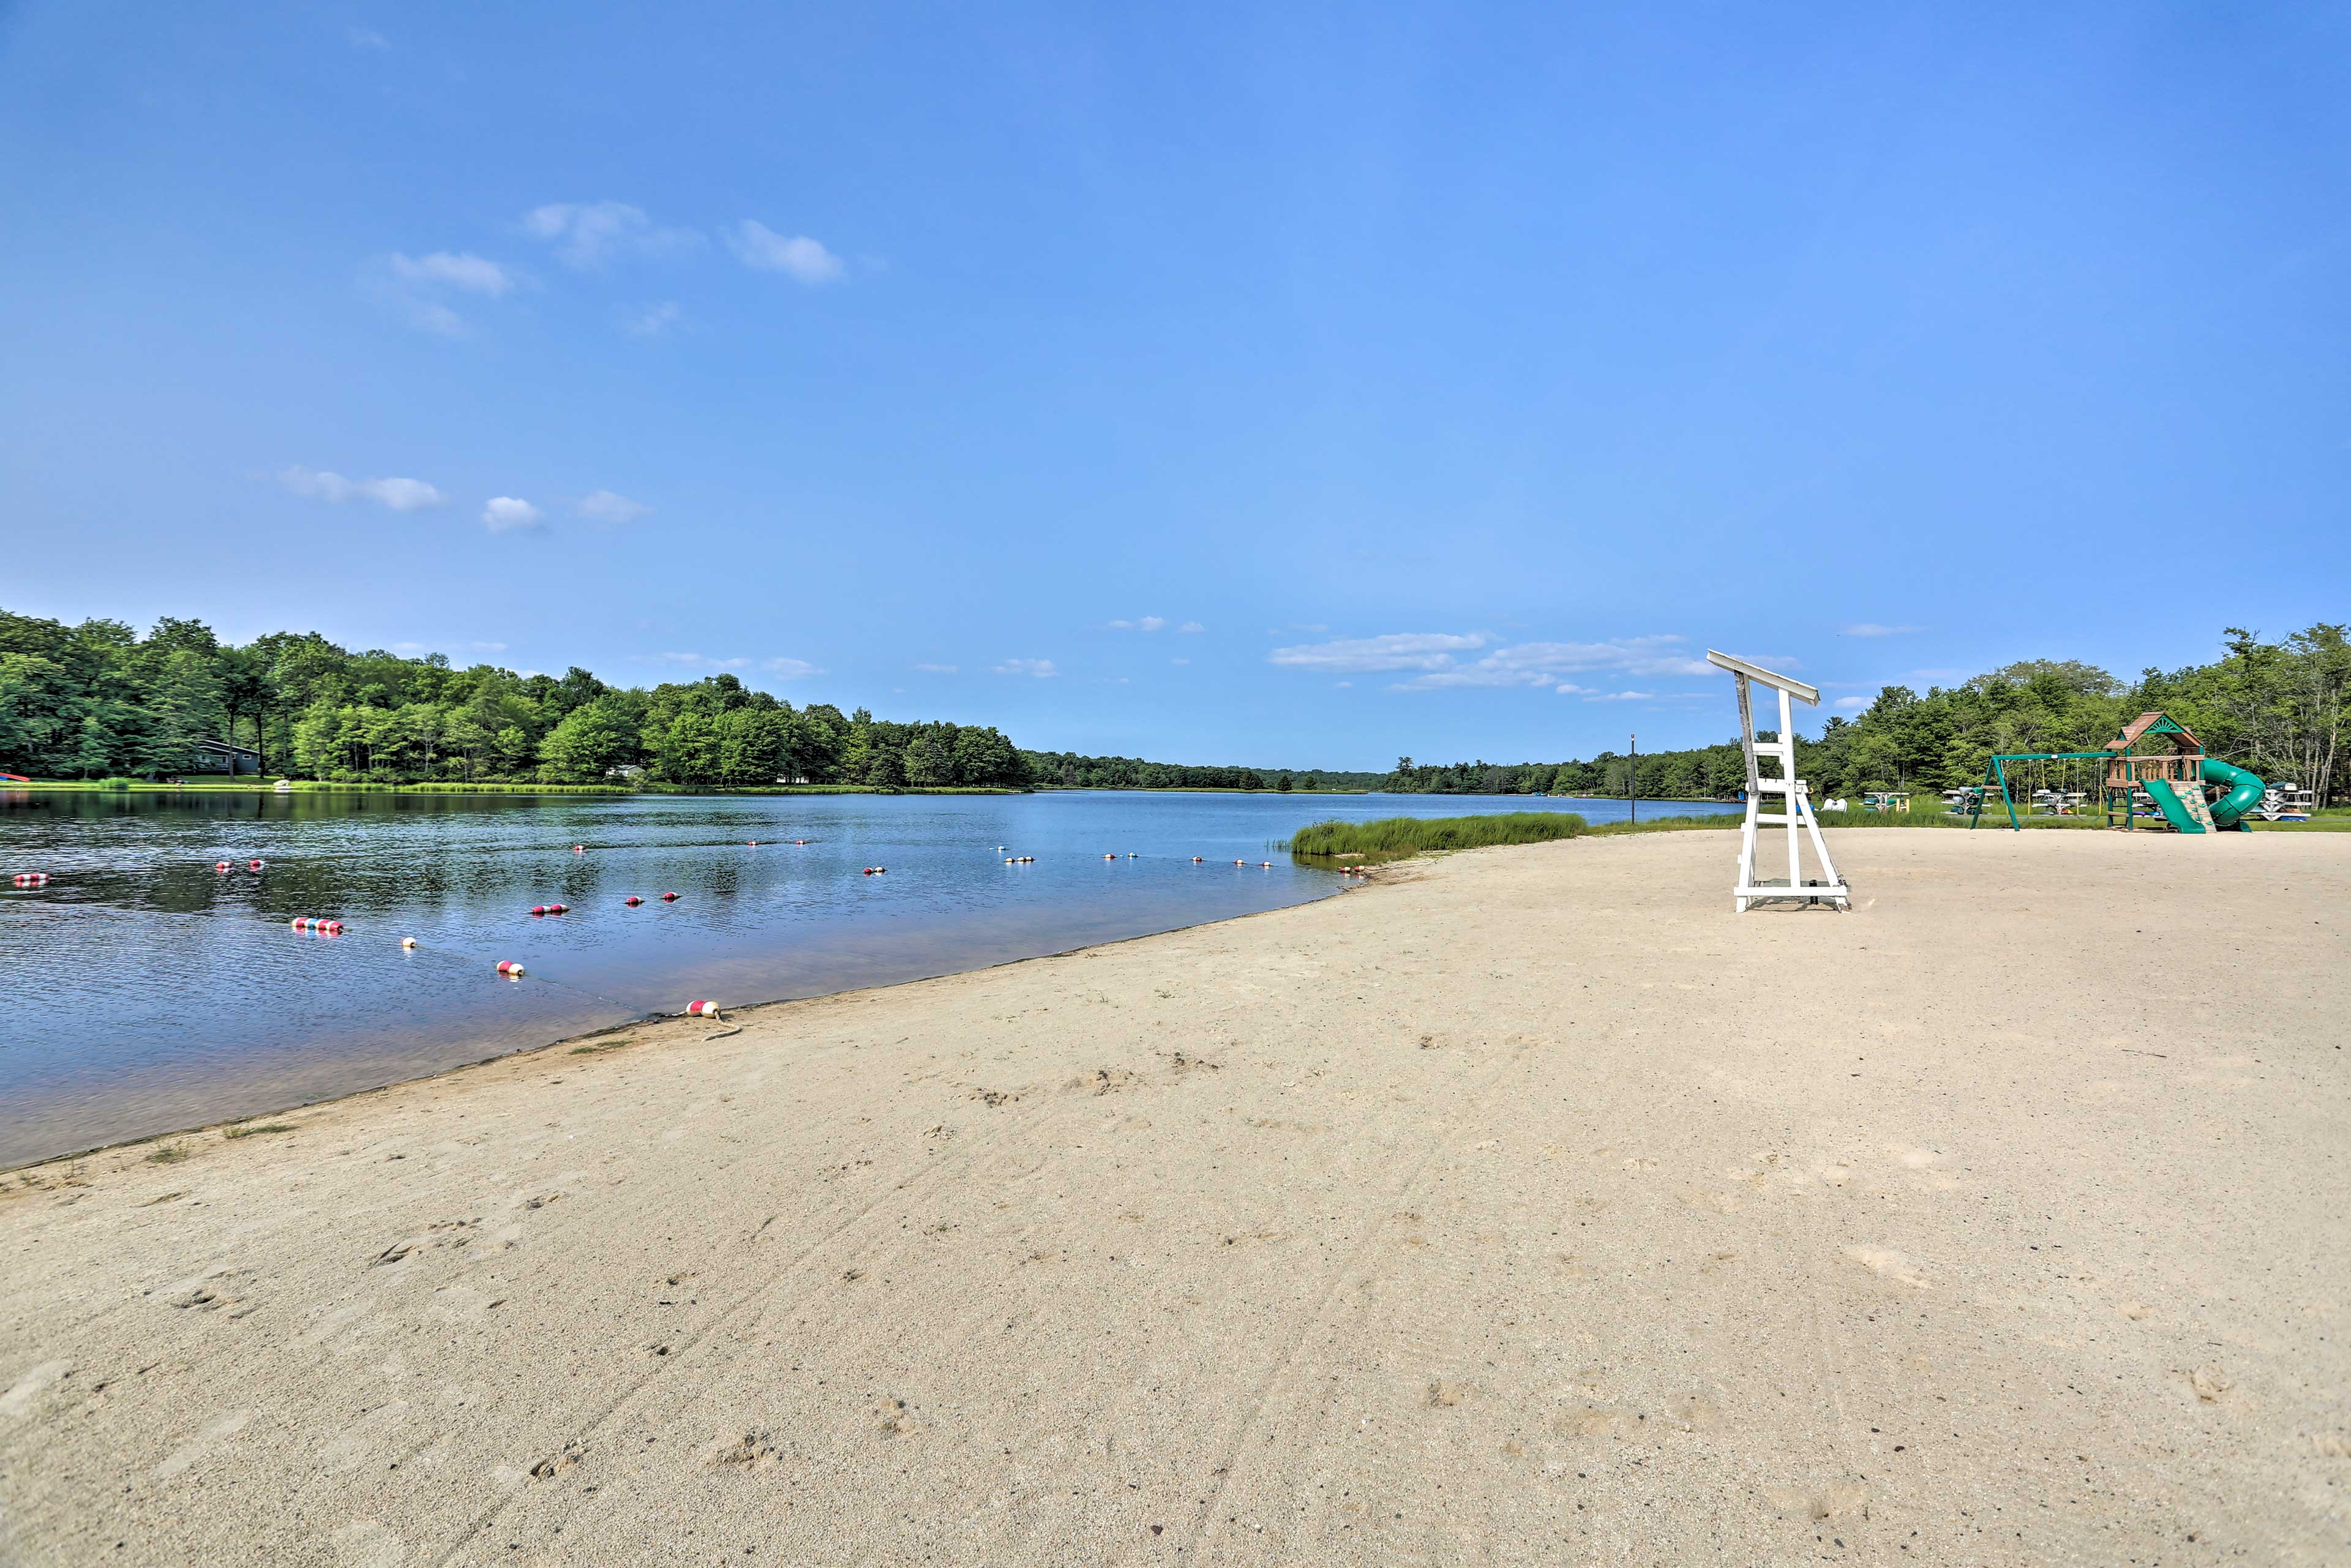 Sink your toes in the sand or the refreshing lake waters. The choice is yours!